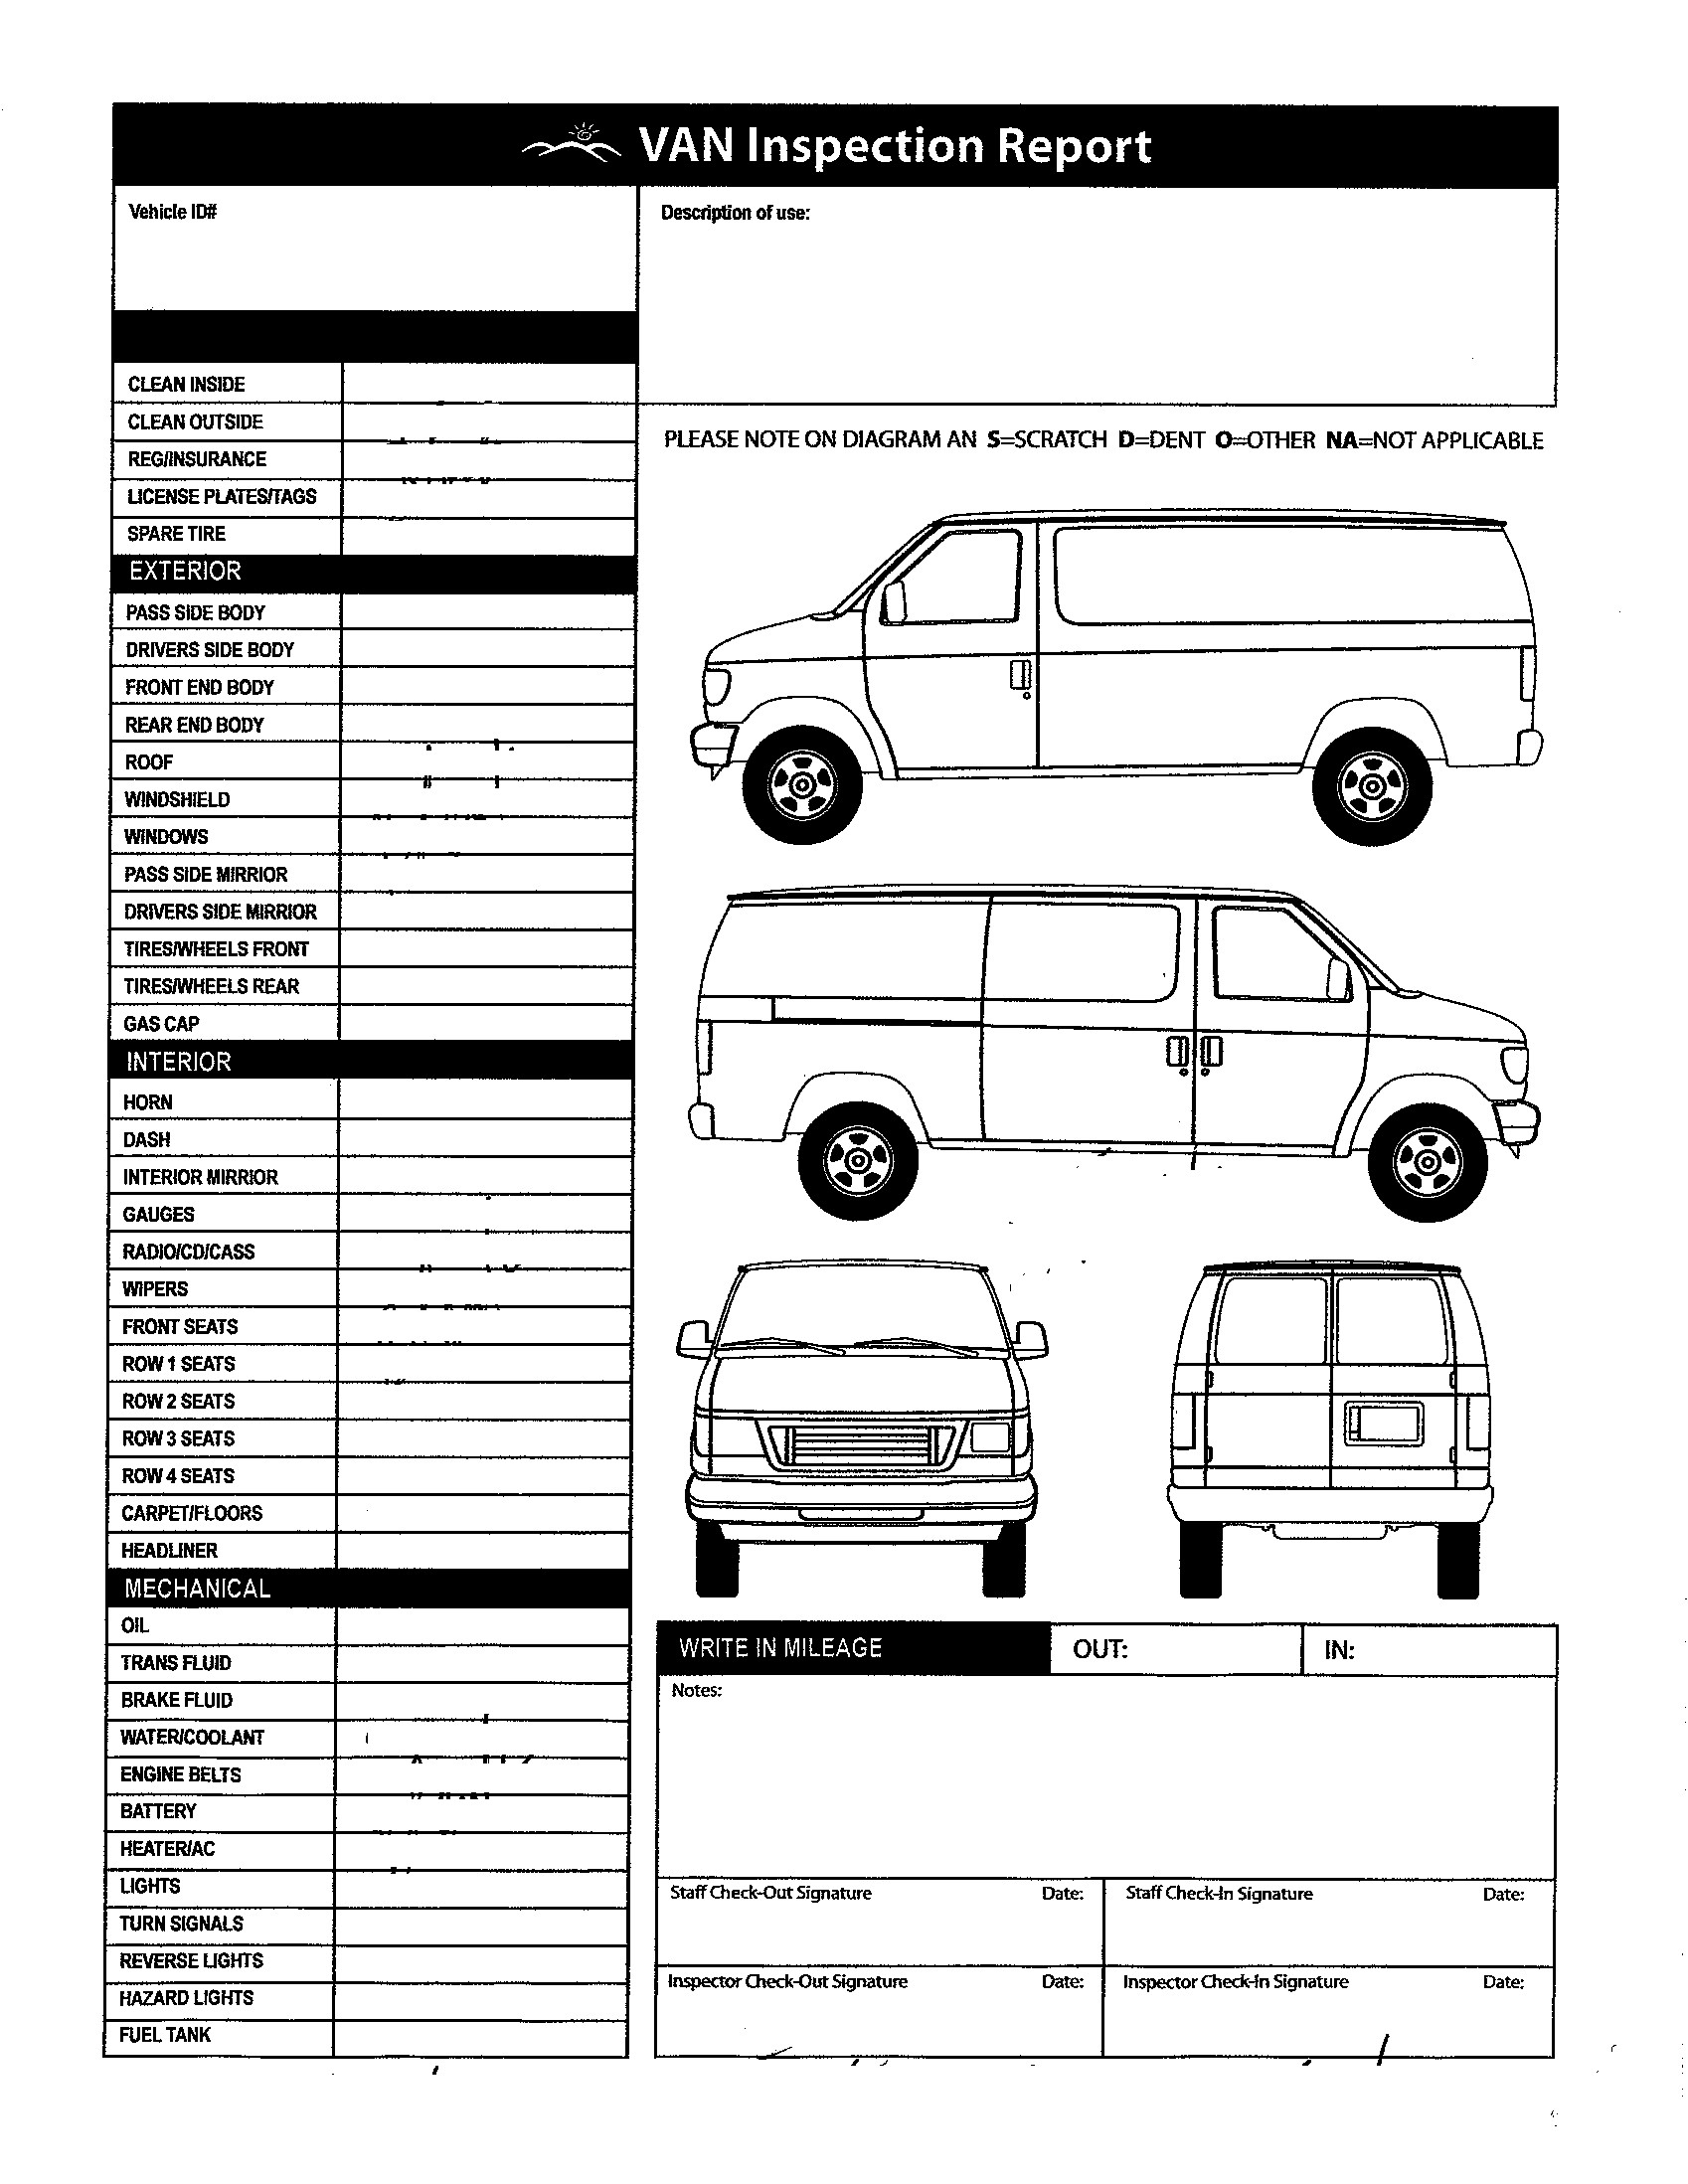 Vehicle Condition Report Template | Dattstar with Car Damage Report Template